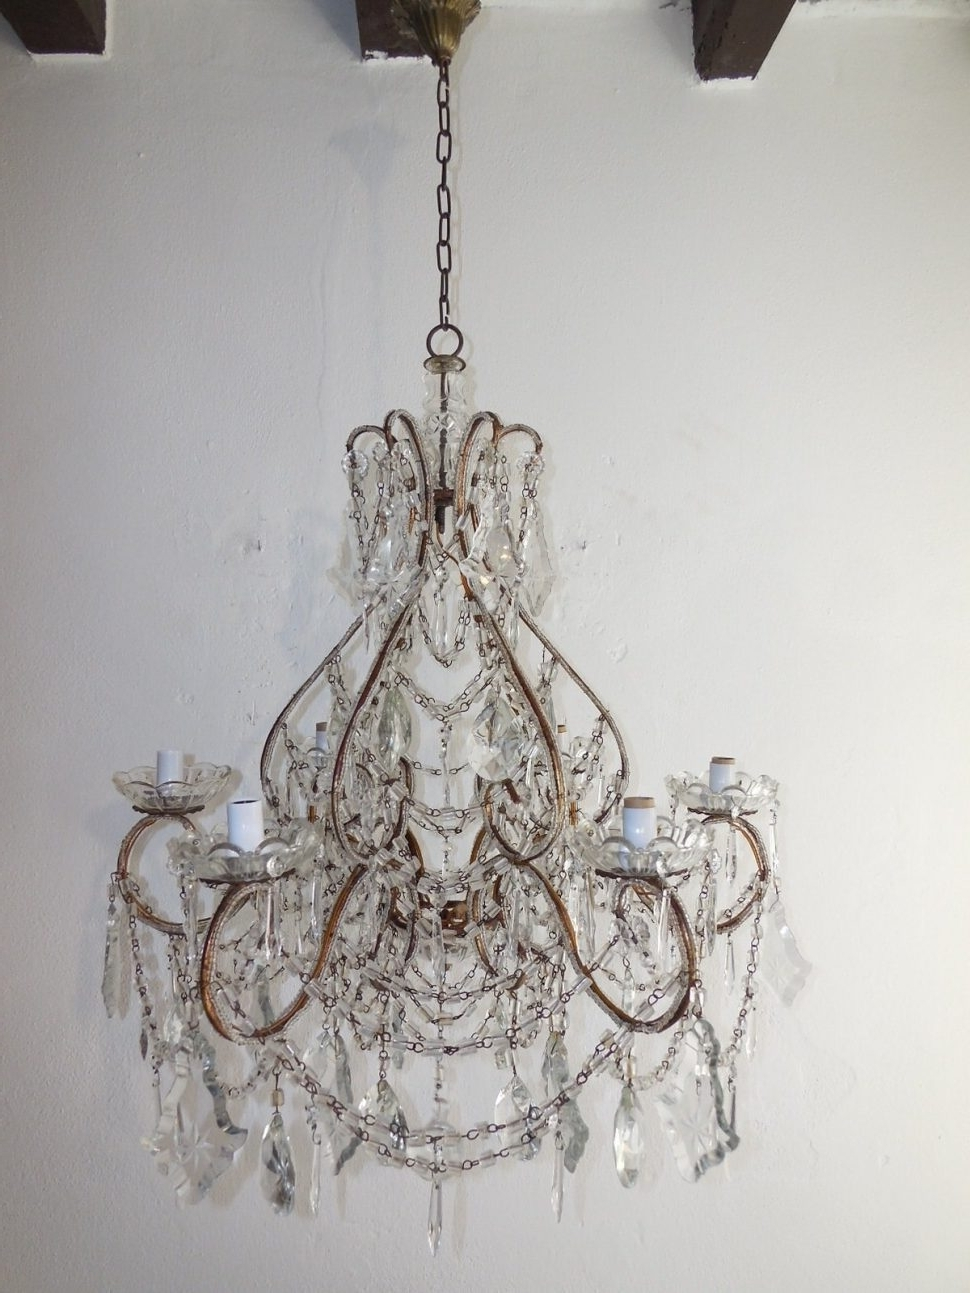 Lead Crystal Chandelier With Newest Chandeliers : Lead Crystal Chandelier Prisms Chandeliers Design Lamp (View 12 of 20)